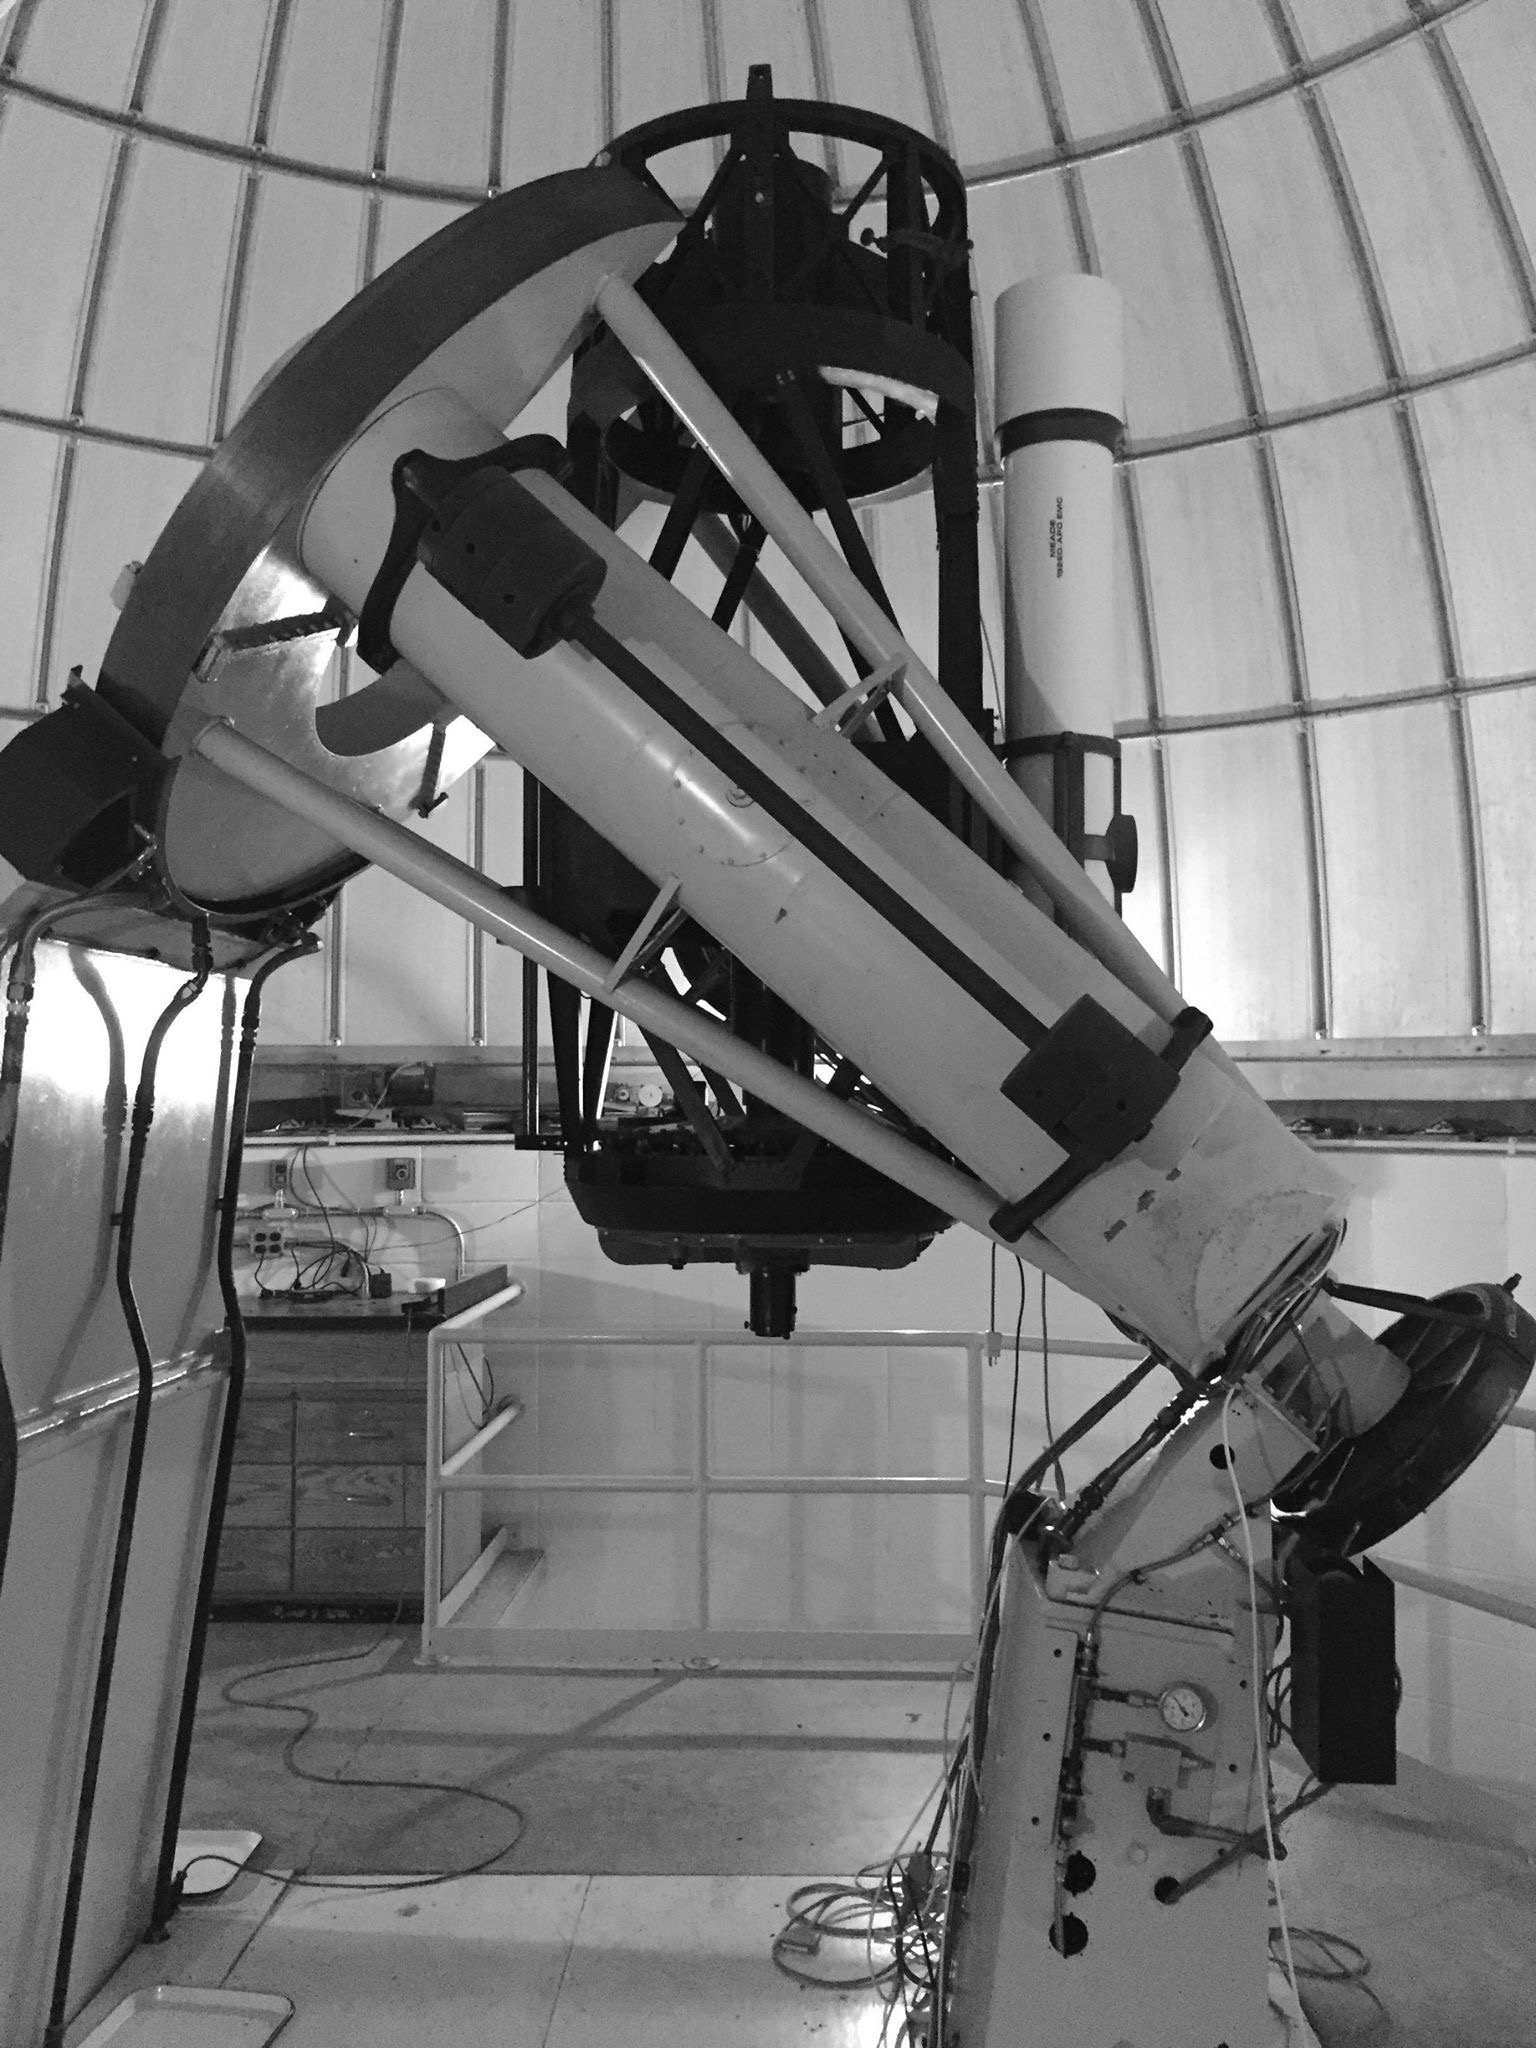 Corning Community College's one-tenth scale model of the 200-inch Hale Telescope at Mt. Palomar, CA